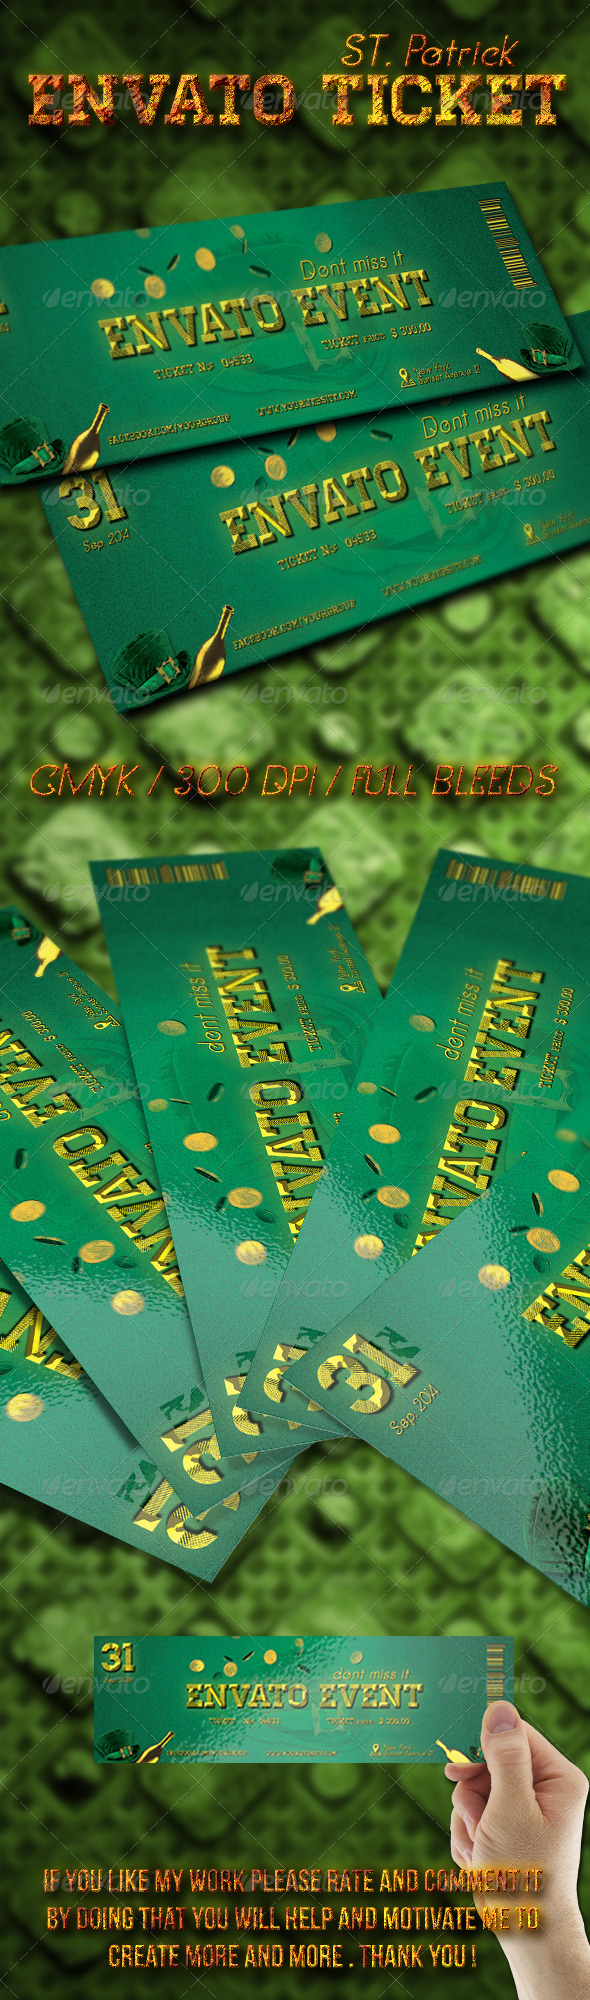 St. Patrick Ticket Template - Cards & Invites Print Templates